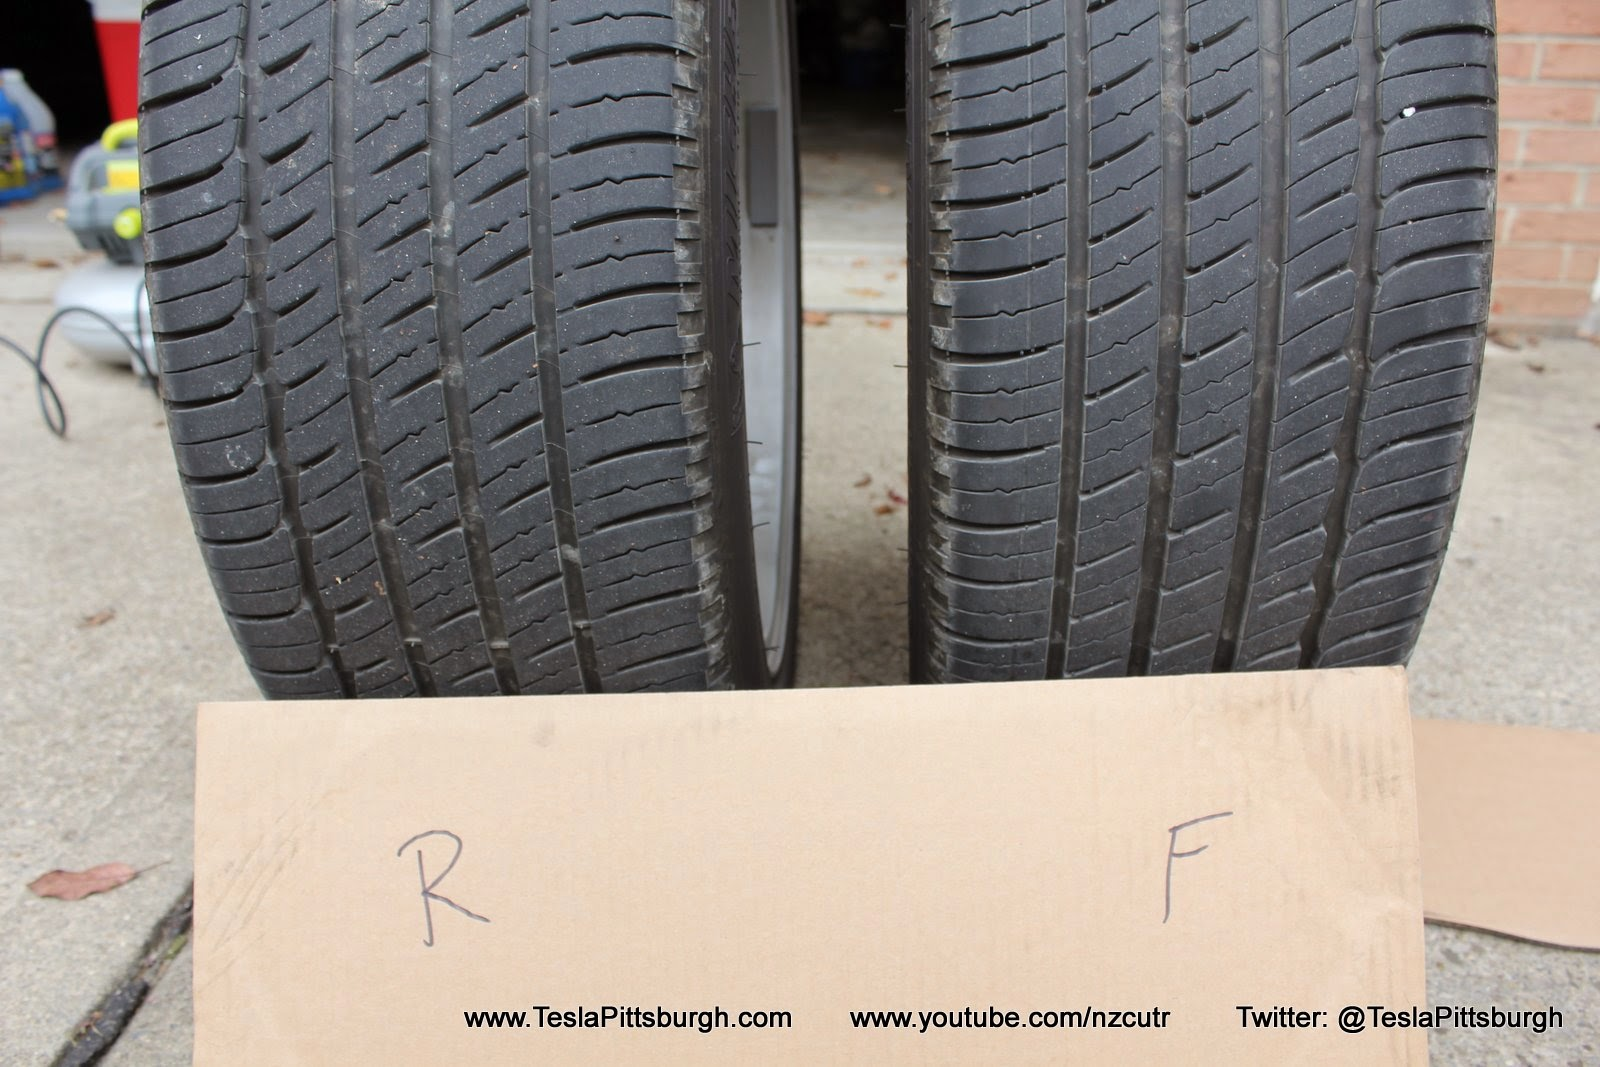 Model-S-Tire-Rotation-Wear